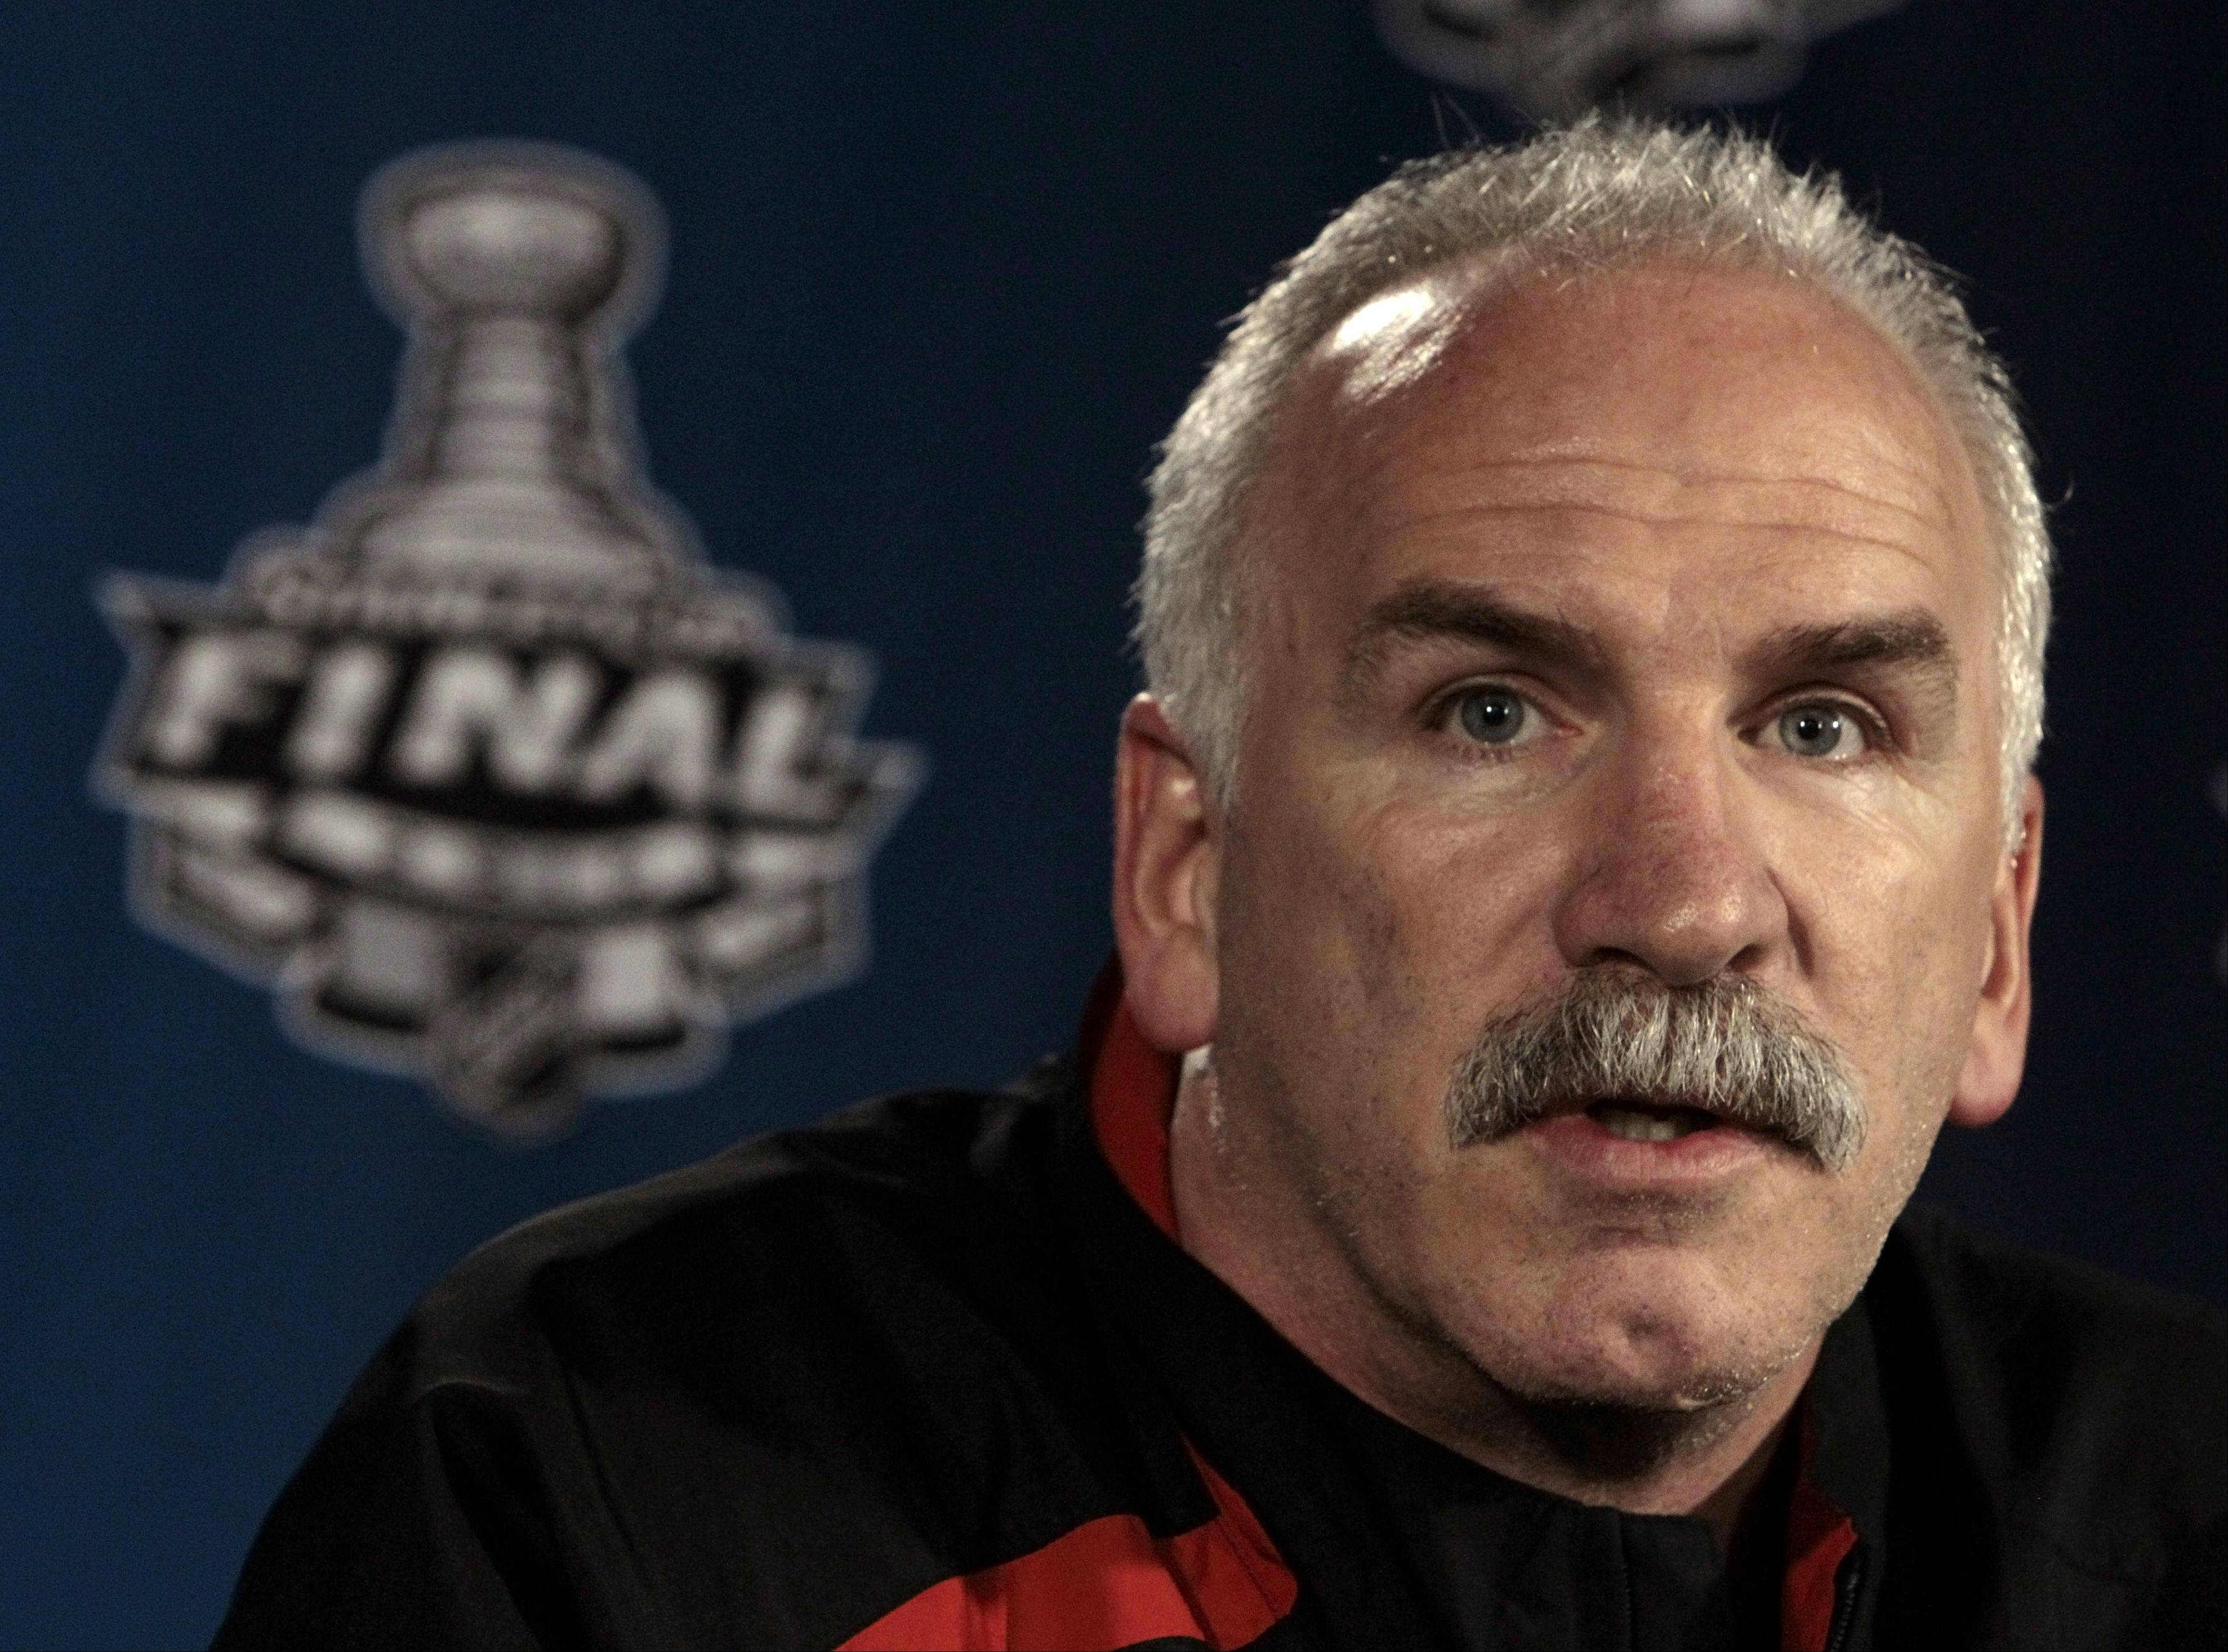 Chicago Blackhawks coach Joe Quenneville answers questions Sunday, May 30, 2010, in Chicago. The Blackhawks are scheduled to play the Philadelphia Flyers in Game 2 of the Stanley Cup NHL hockey finals Monday. The Blackhawks lead the series 1-0. (AP Photo/Mark Humphrey)